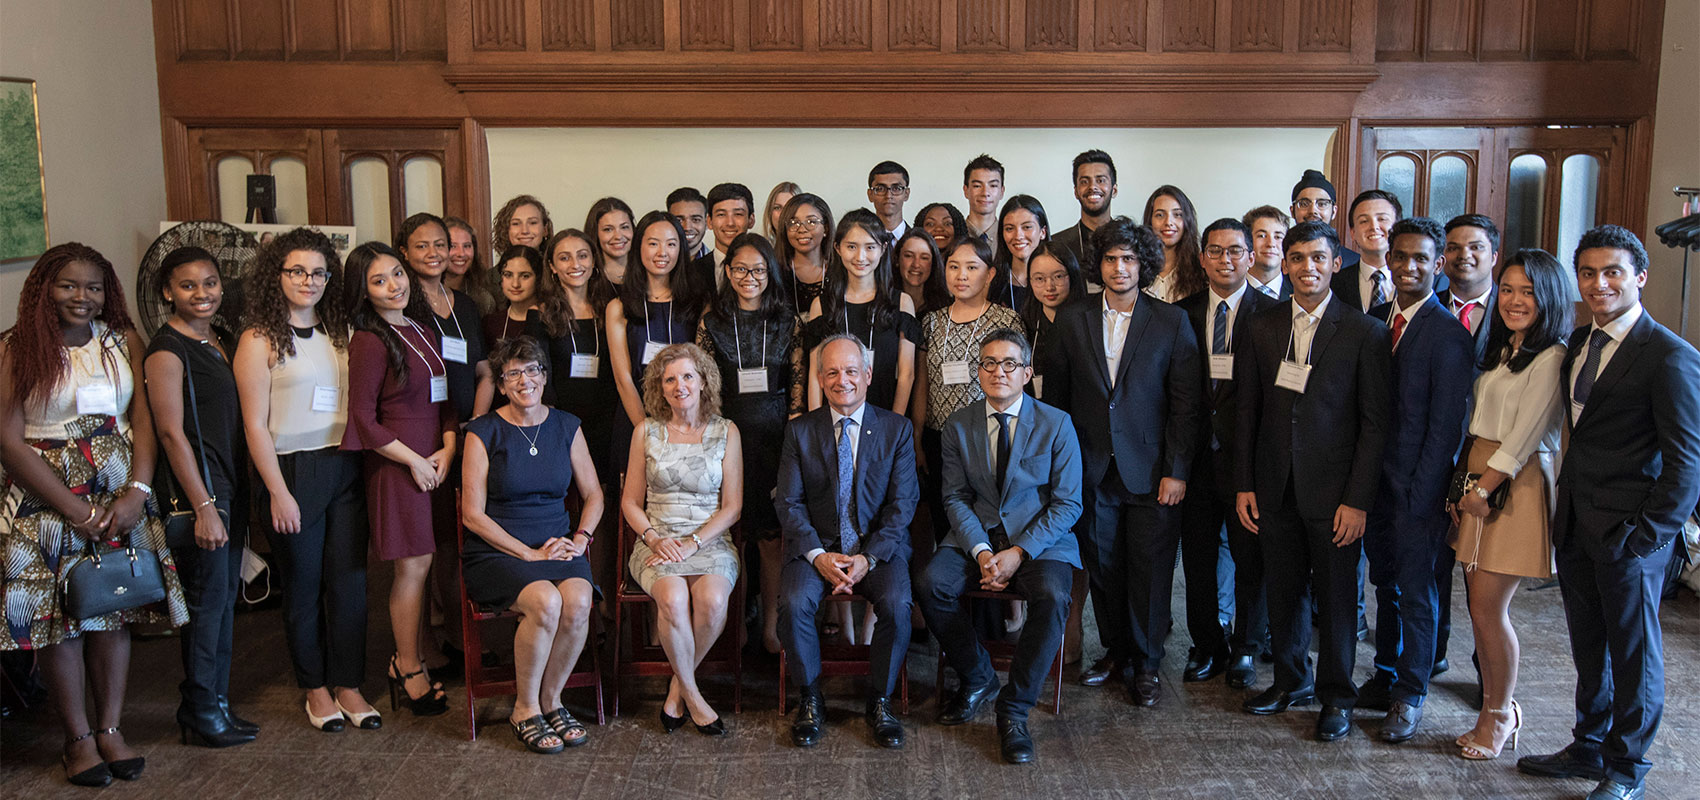 Emily Wen, a Rotman commerce student and Pearson Scholar from Massachusetts, speaks with U of T President Meric Gertler at a reception for the scholarship recipients